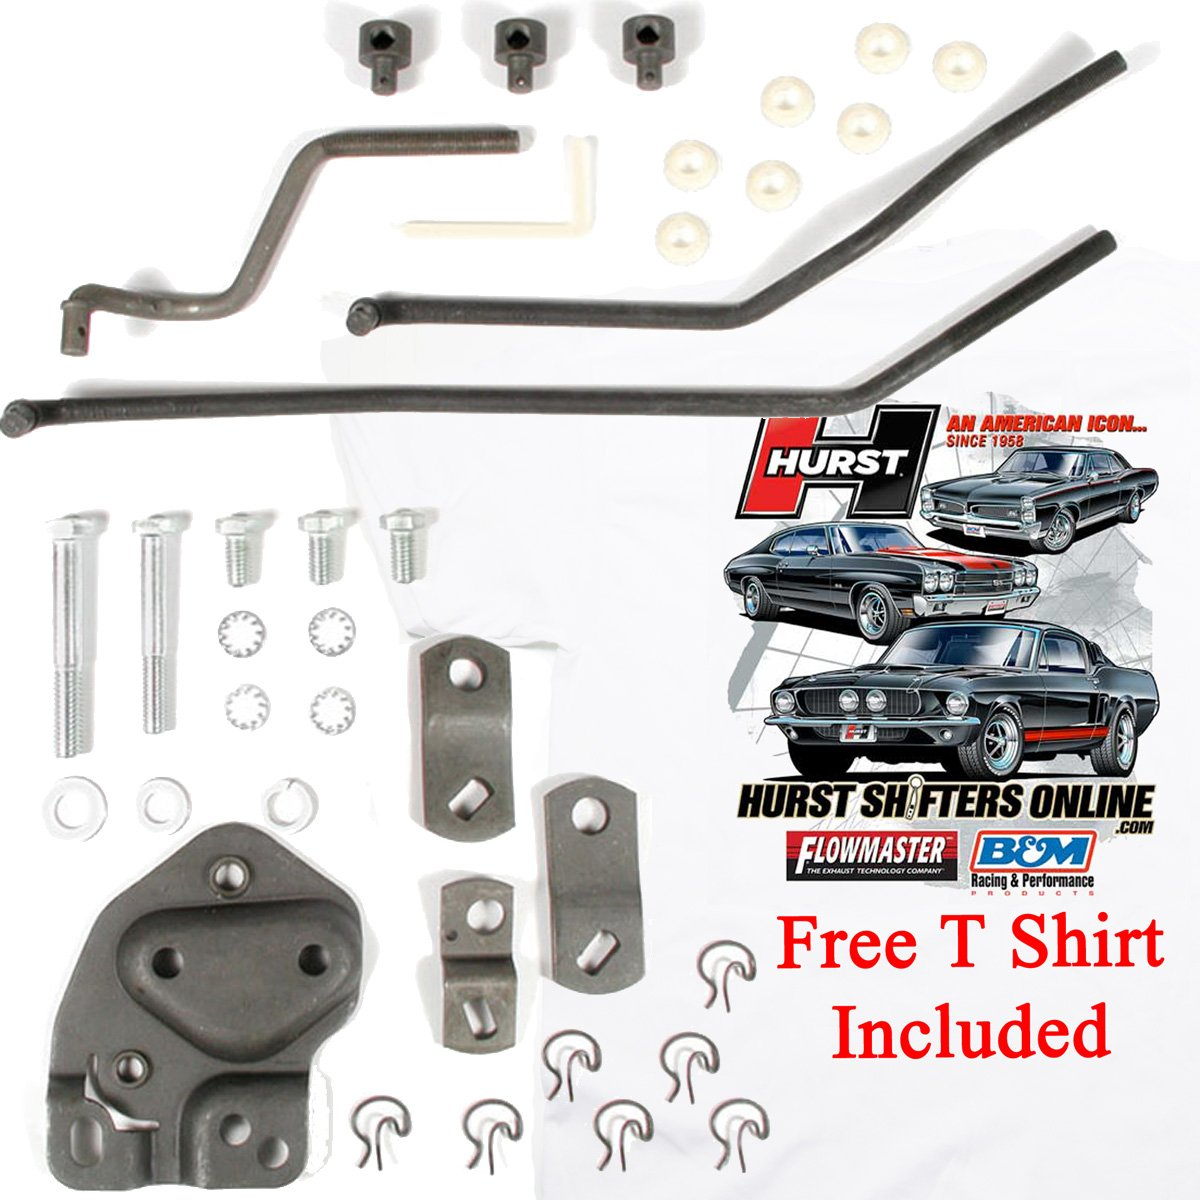 hurst competition plus shifter installation instructions